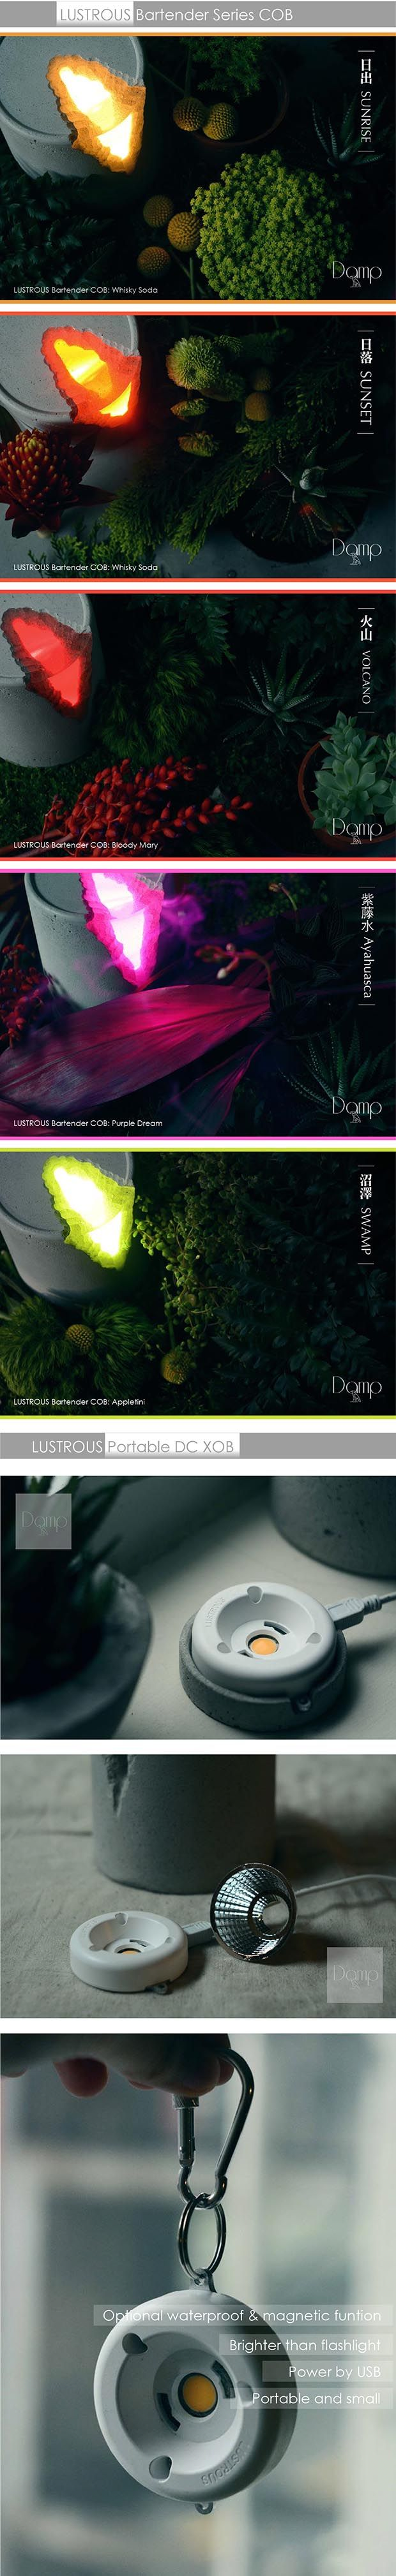 LUSTROUS works with local lamp designer brand DAMP.